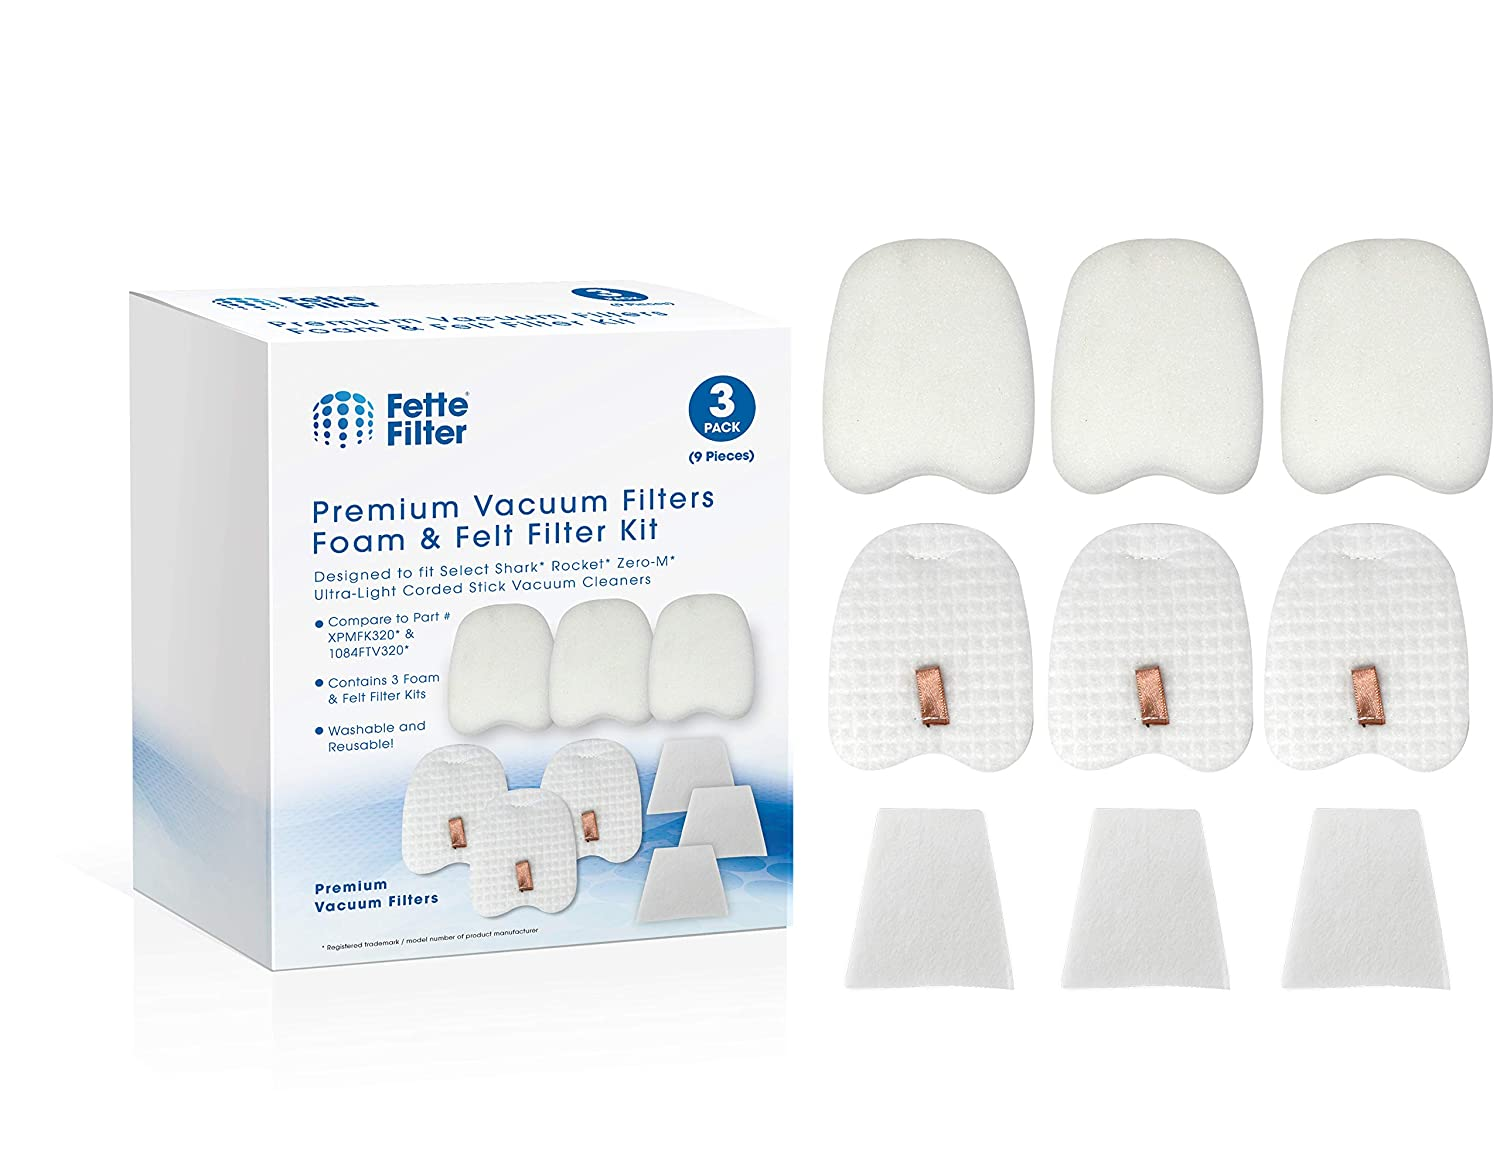 Fette Filter – Vacuum Filter Compatible with Shark Rocket Zero-M Ultra-Light Corded Stick HV345, ZS350, ZS351, ZS352. Compare to Part # XPMFK320 (3-Pack)